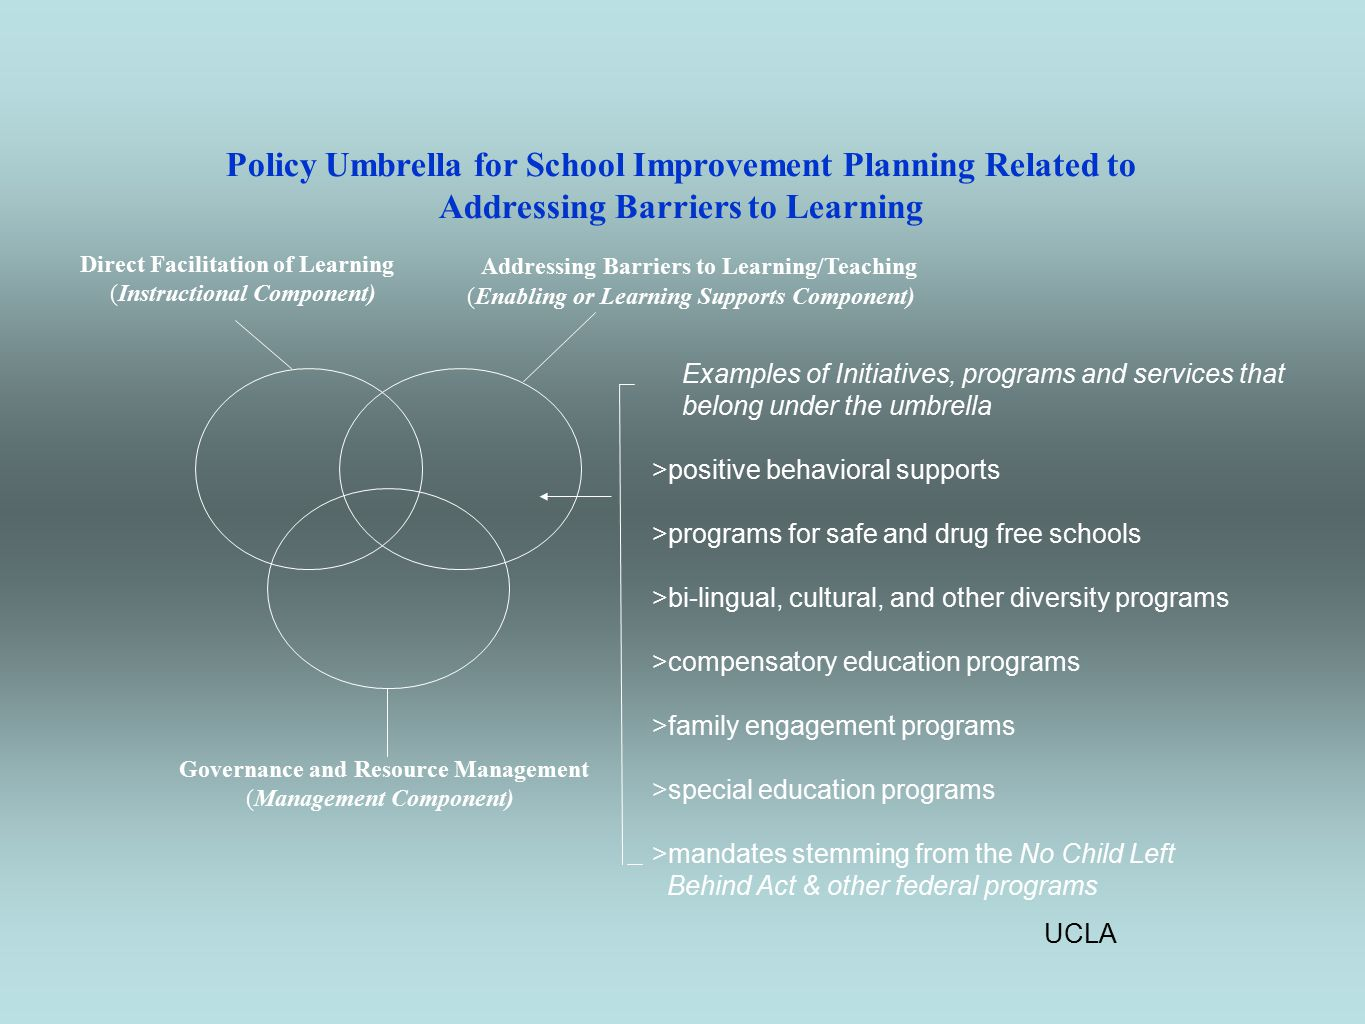 UCLA Governance and Resource Management (Management Component) Policy Umbrella for School Improvement Planning Related to Addressing Barriers to Learning Addressing Barriers to Learning/Teaching (Enabling or Learning Supports Component) Direct Facilitation of Learning (Instructional Component) Examples of Initiatives, programs and services that belong under the umbrella >positive behavioral supports >programs for safe and drug free schools >bi-lingual, cultural, and other diversity programs >compensatory education programs >family engagement programs >special education programs >mandates stemming from the No Child Left Behind Act & other federal programs